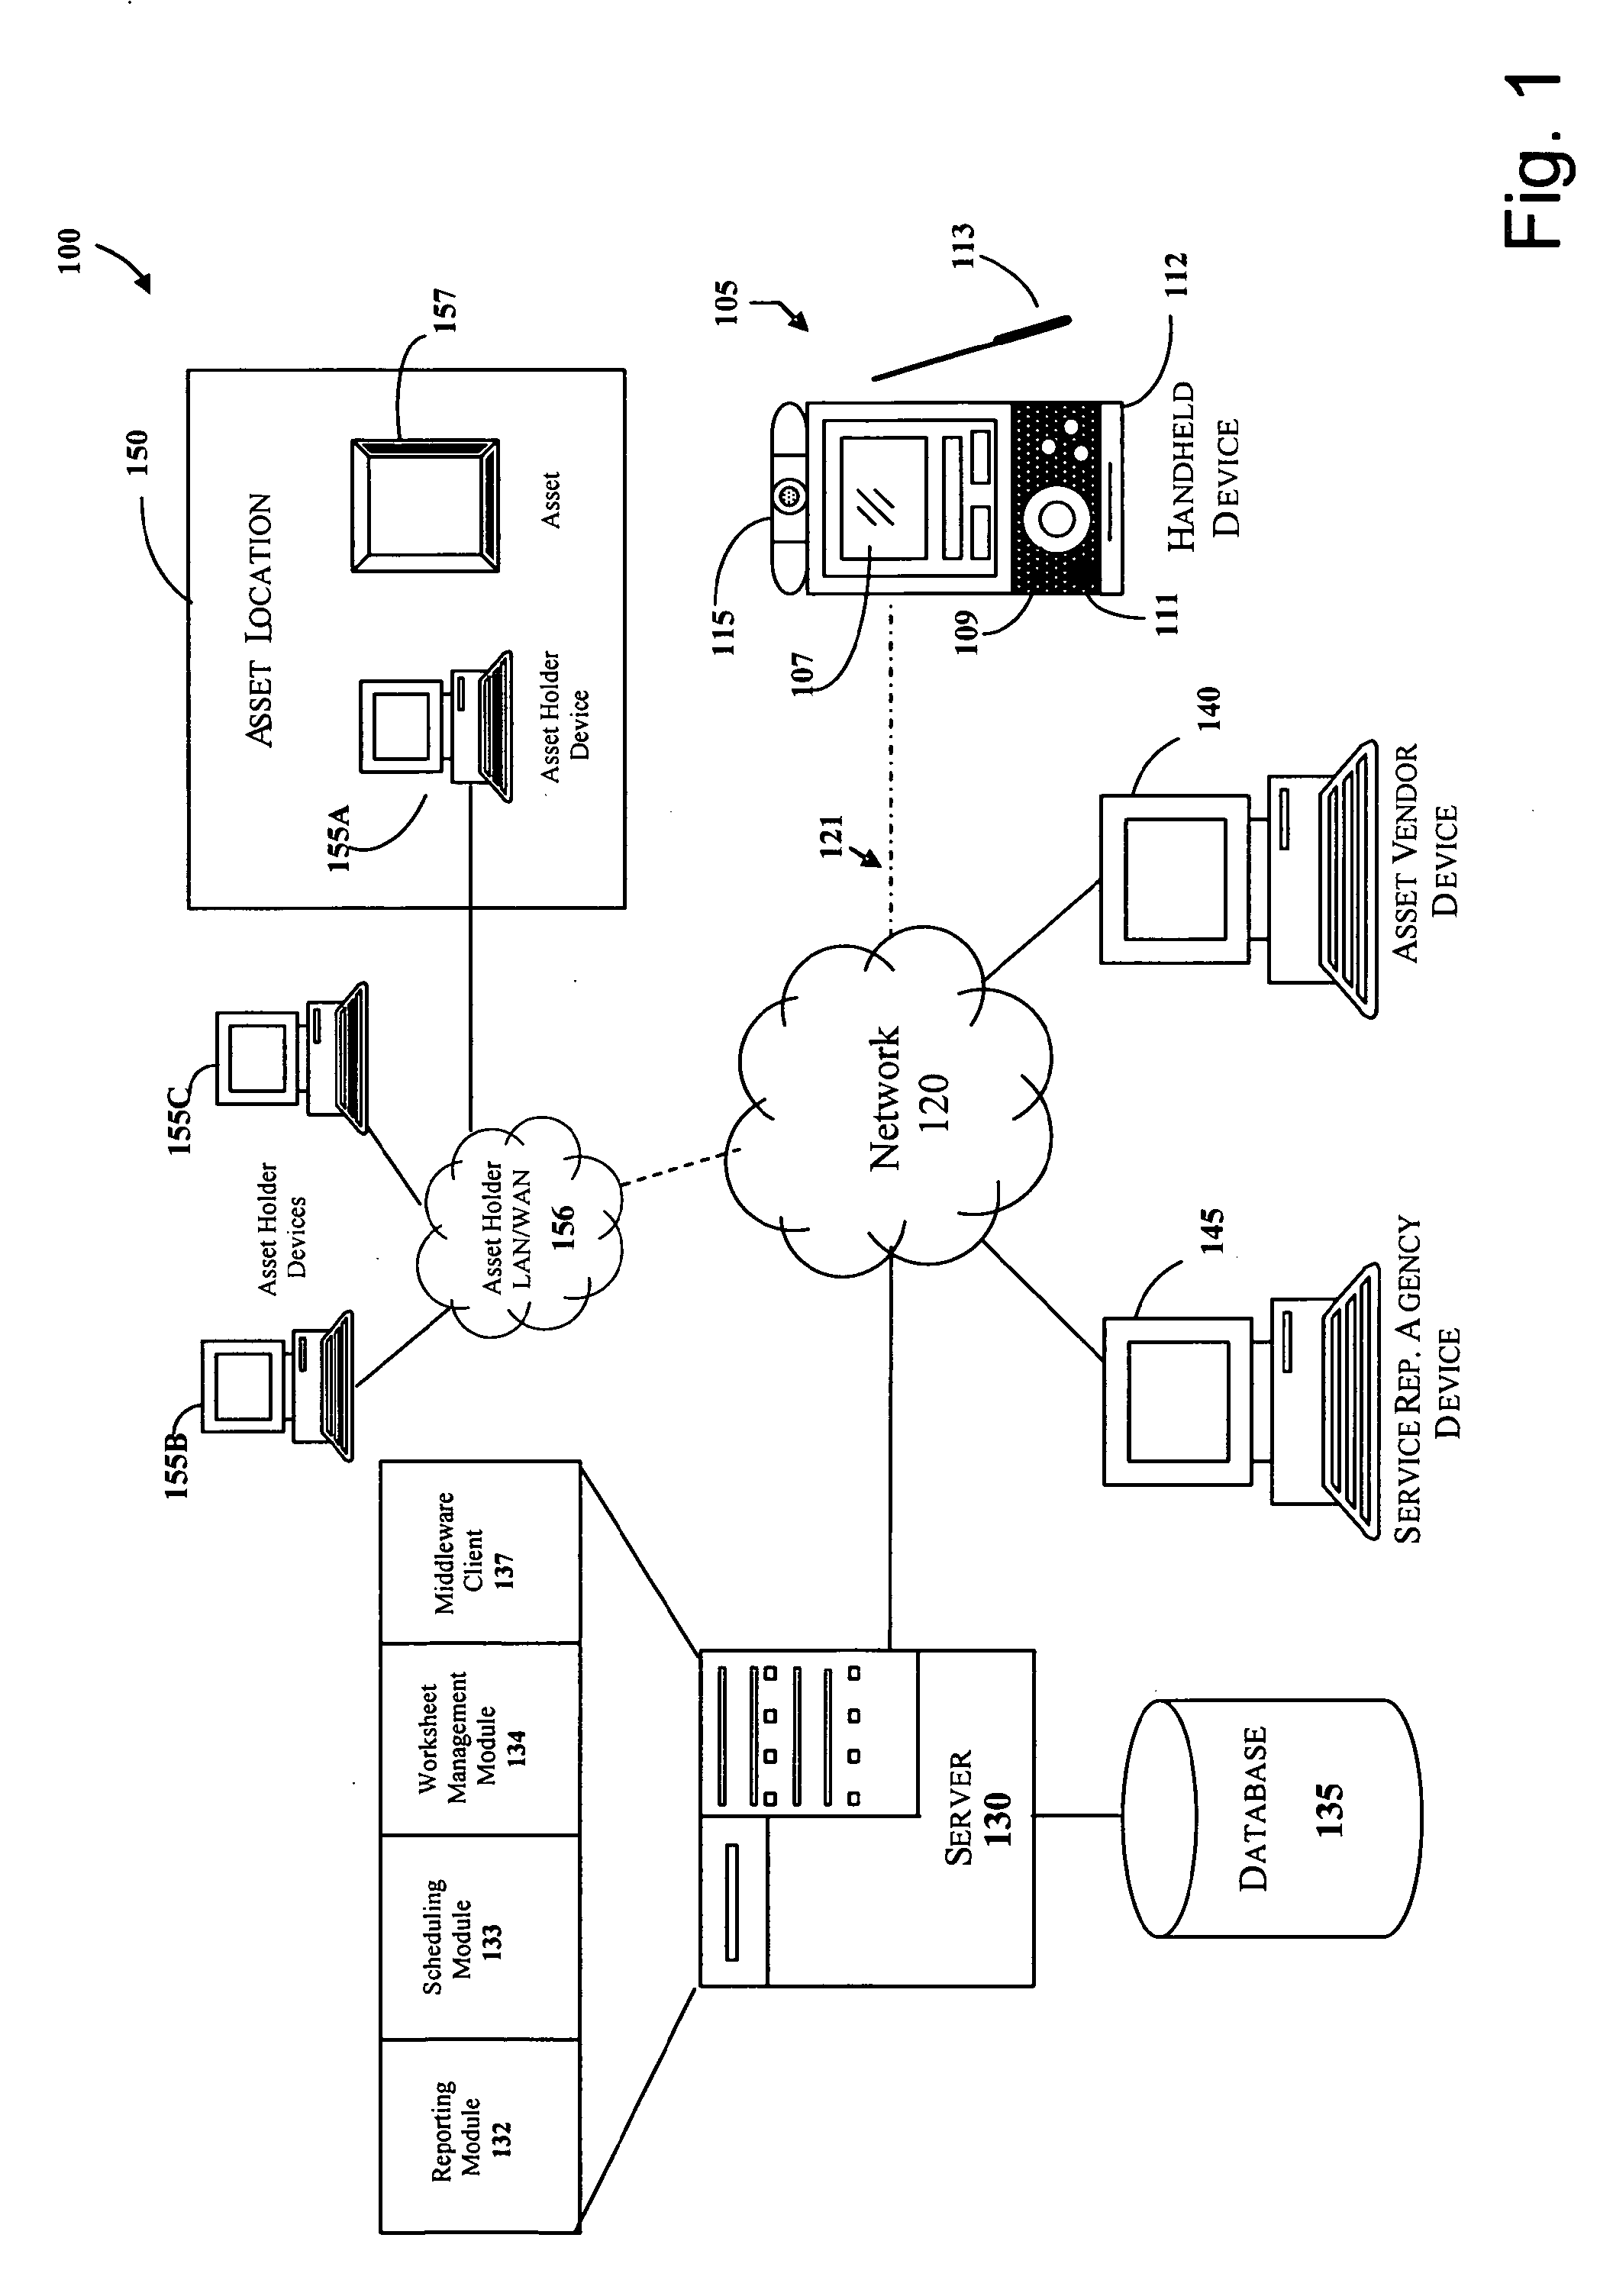 Generating Availability Data System Data Reporting